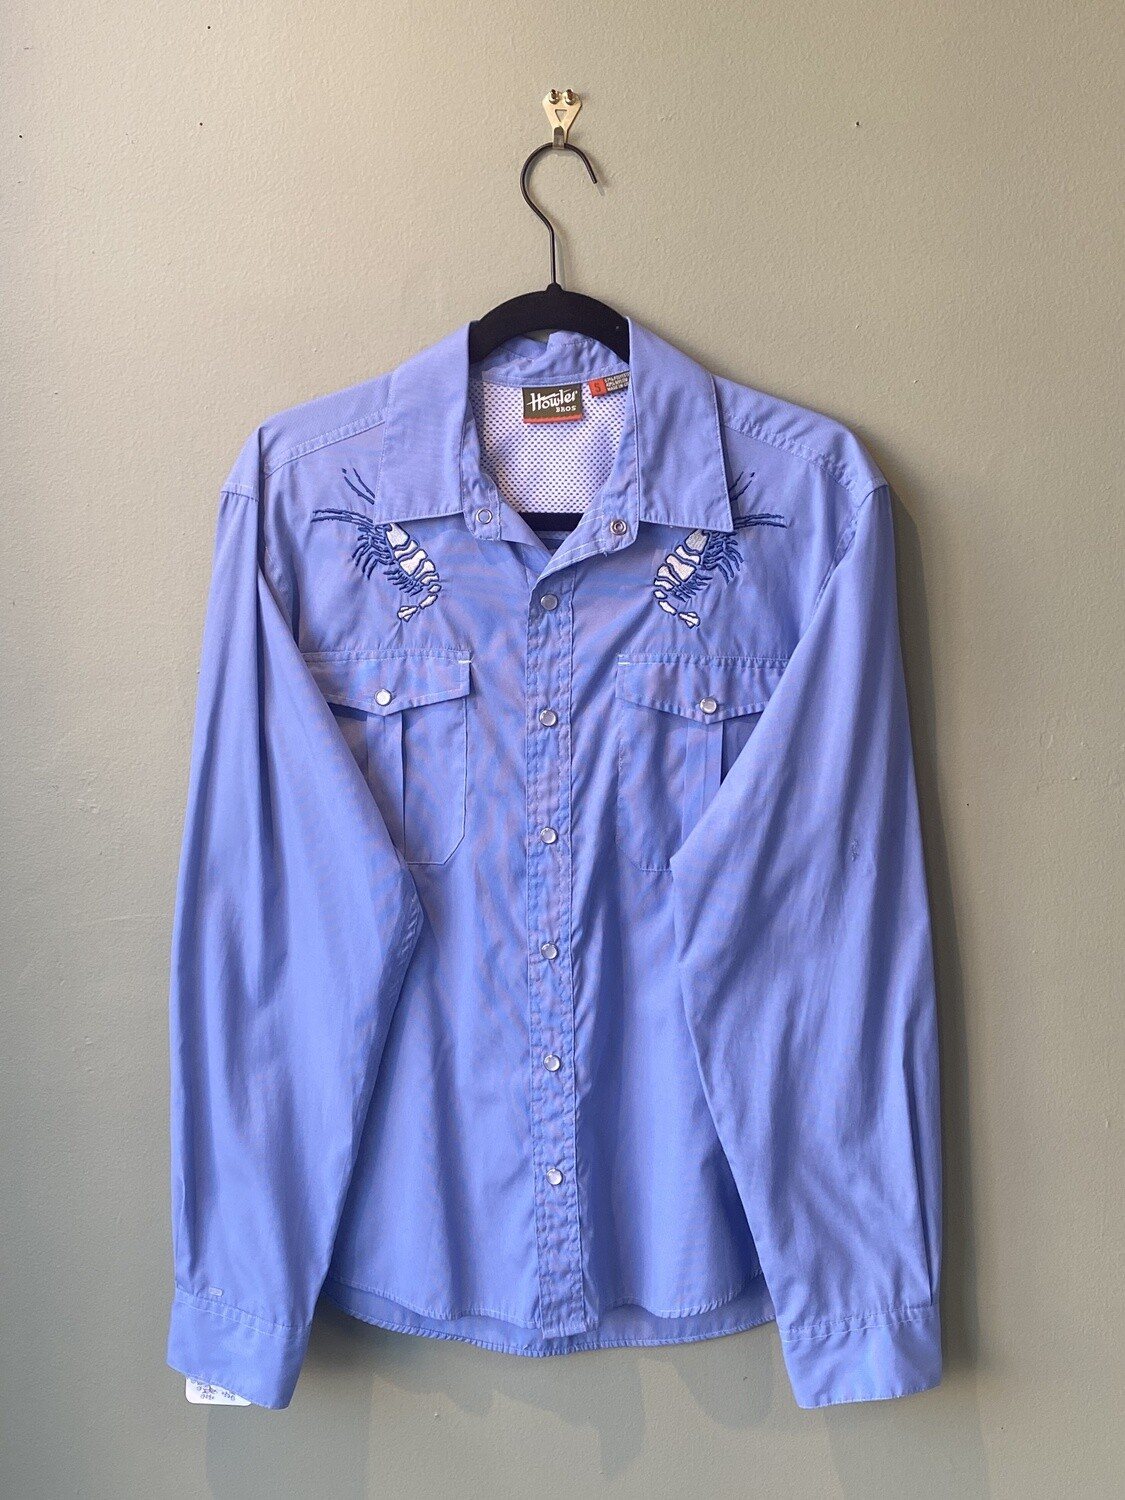 Howler Bros Lobster Shirt, Size S